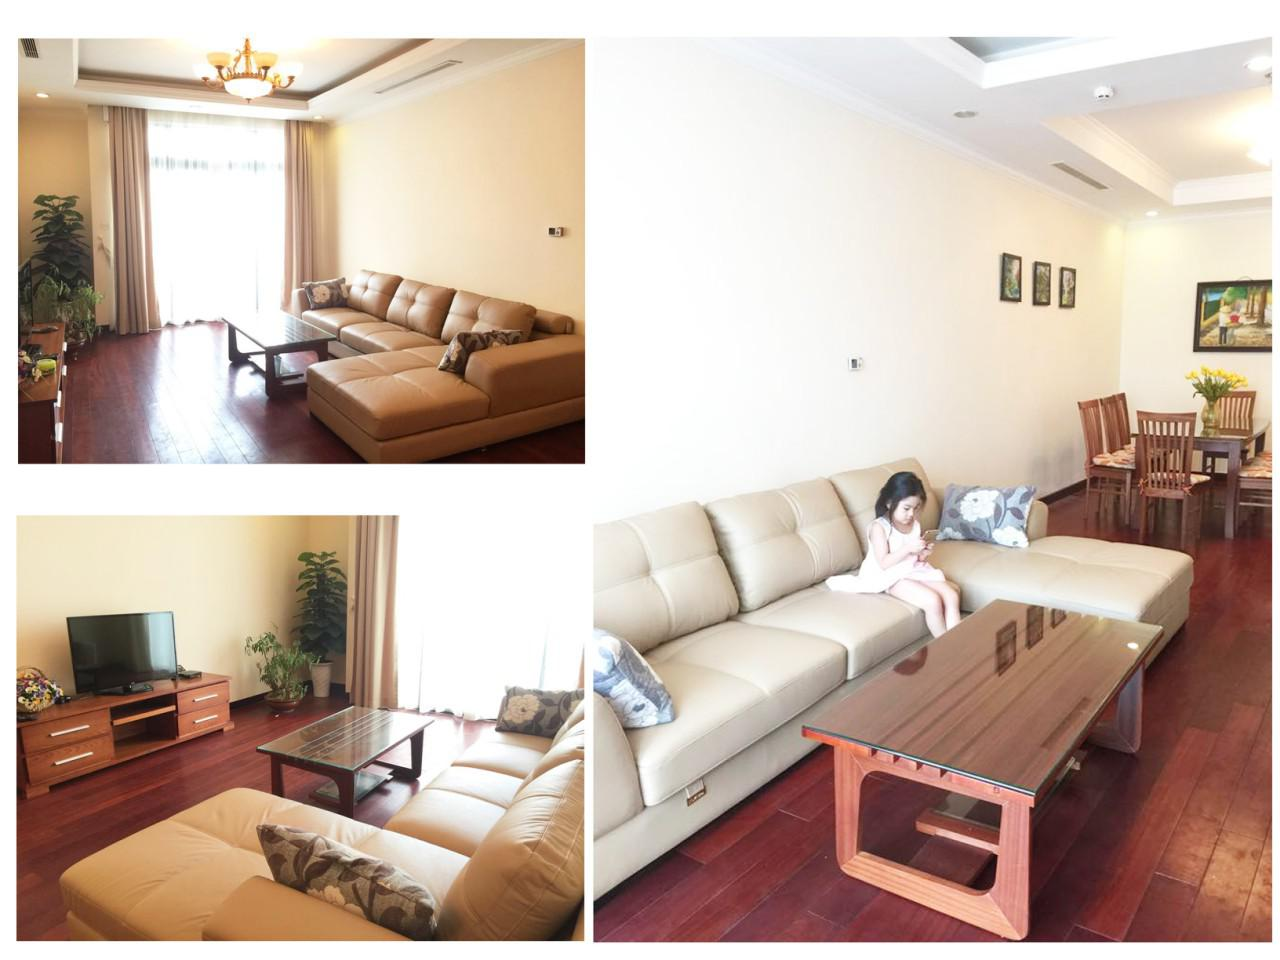 Apartment for rent at R5 Royal City - 132m2 - 2Br / 2Bath - $950